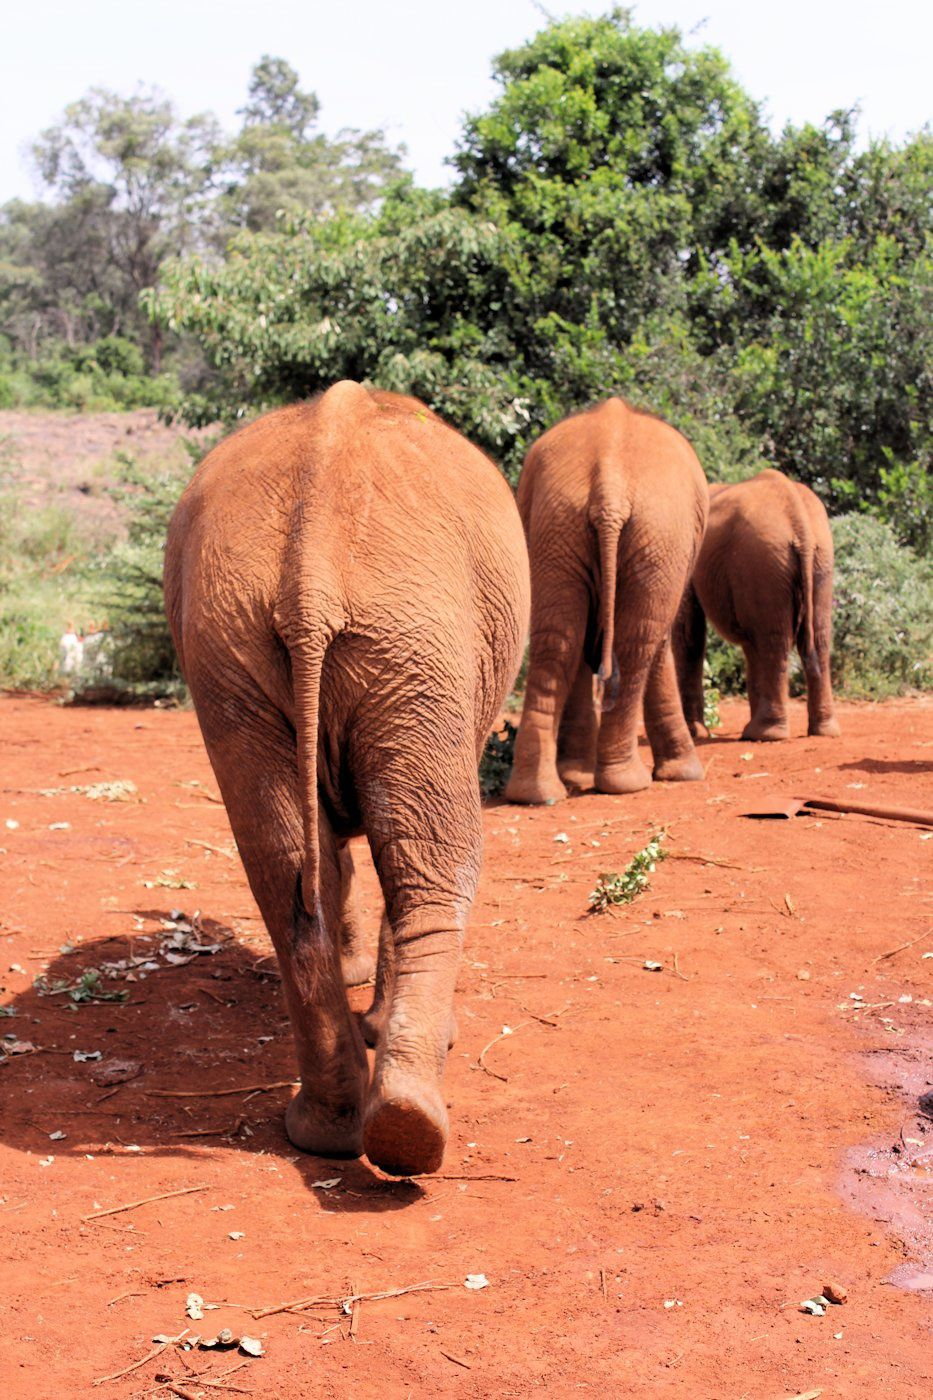 The David Sheldrick Wildlife Trust